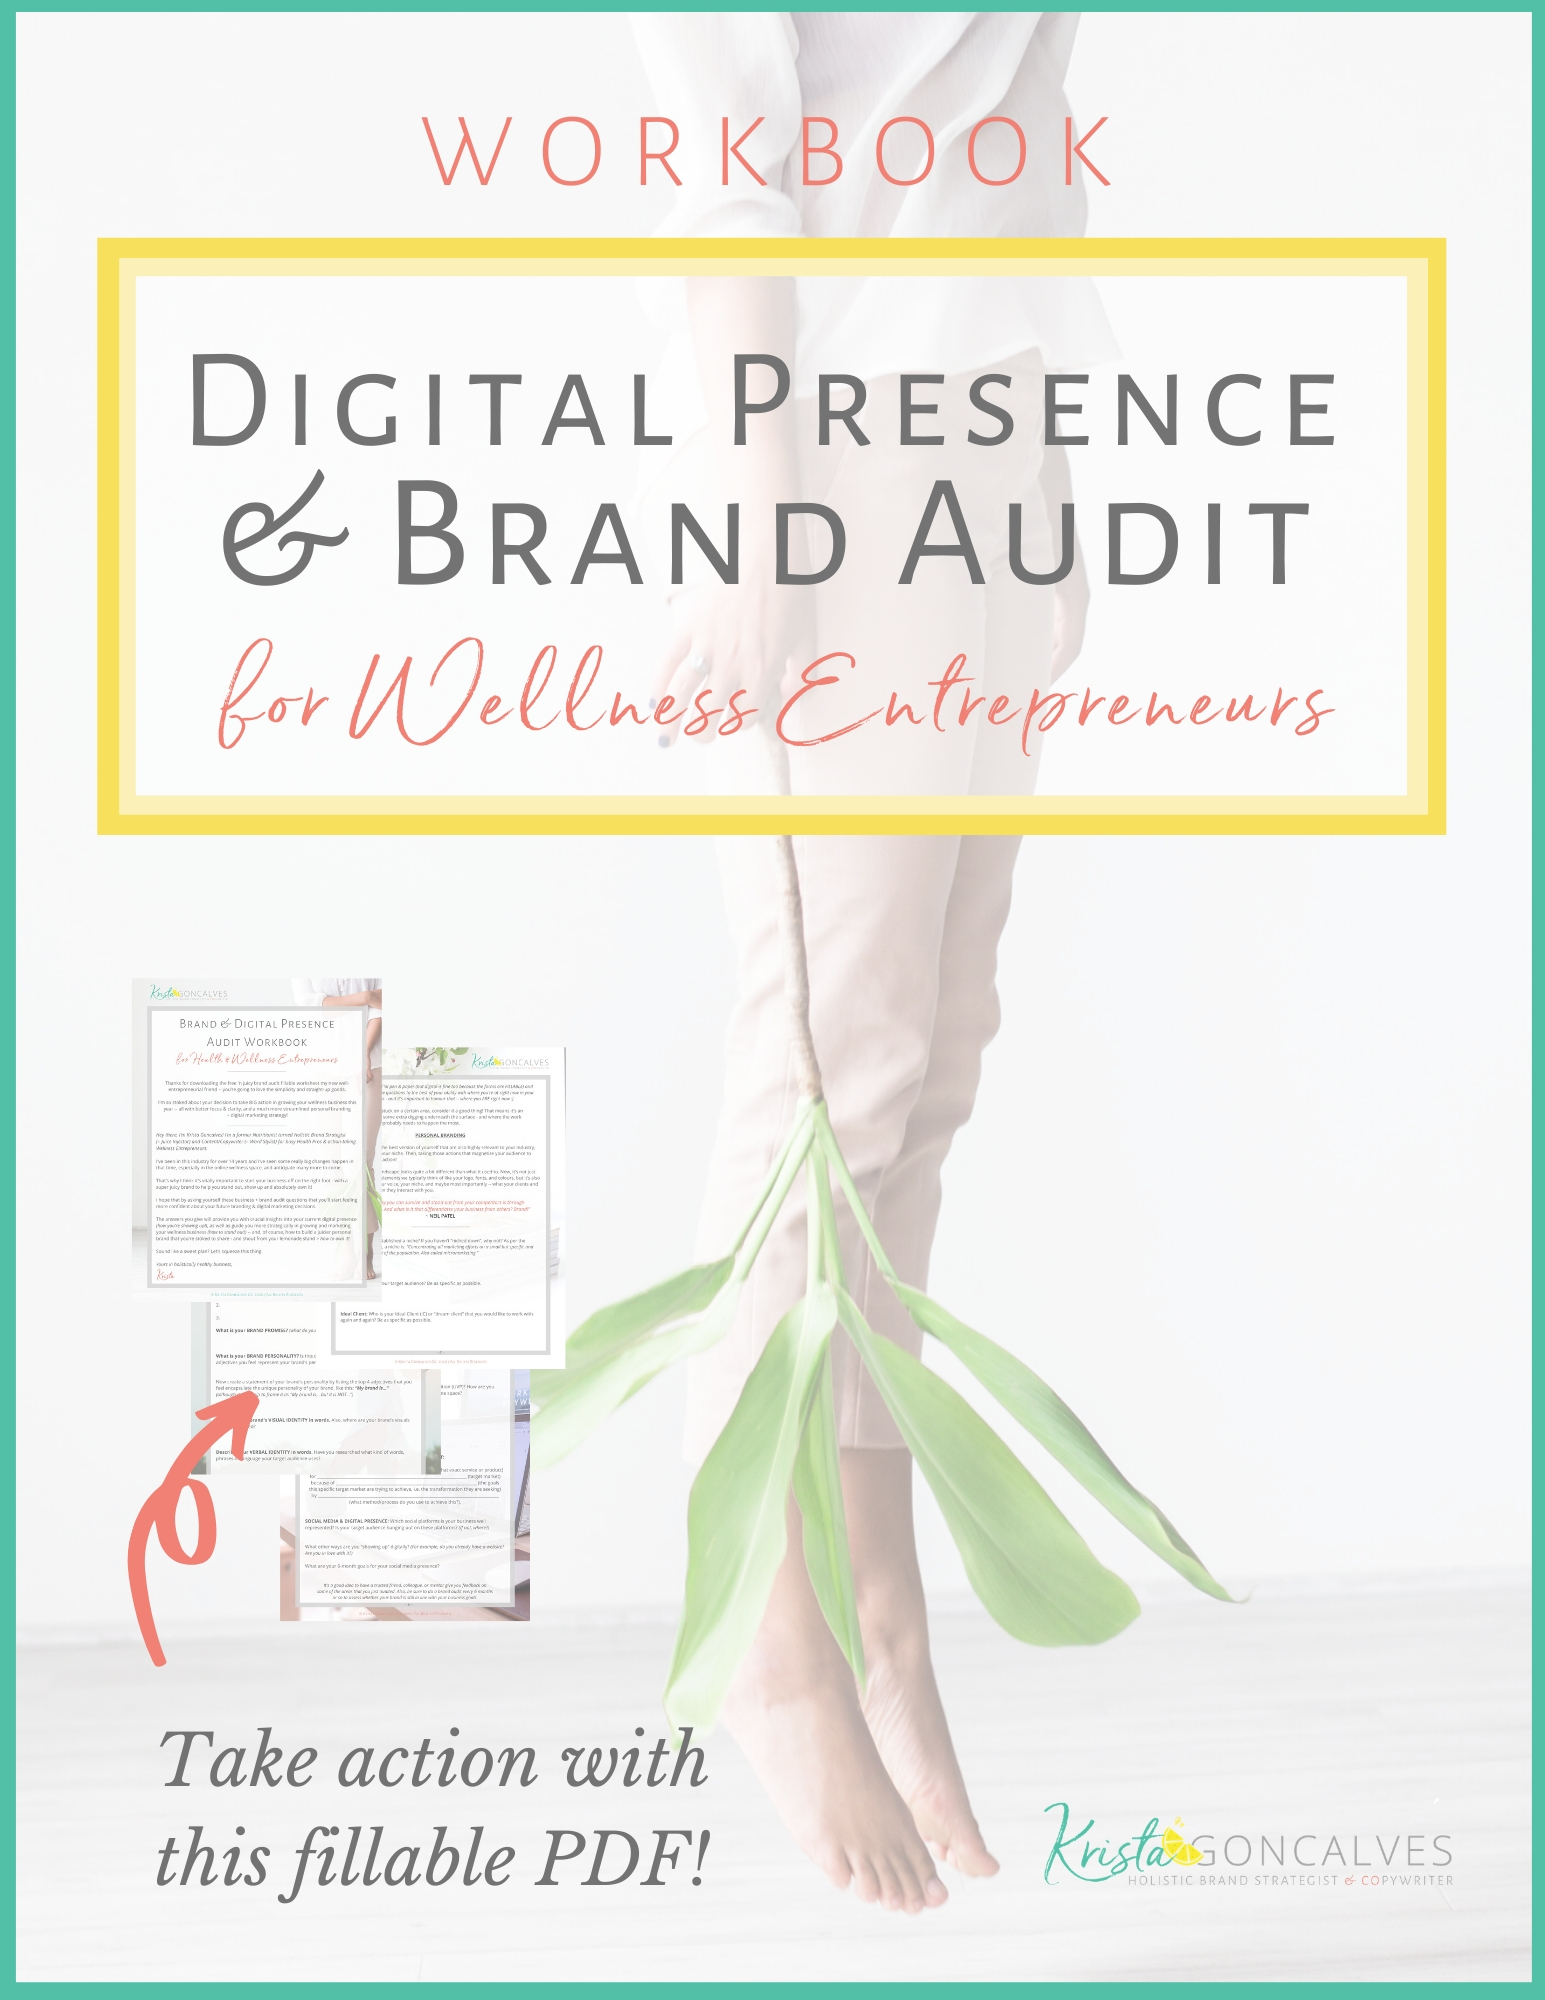 Digital Presence & Brand Audit Workbook | Krista Goncalves Co.